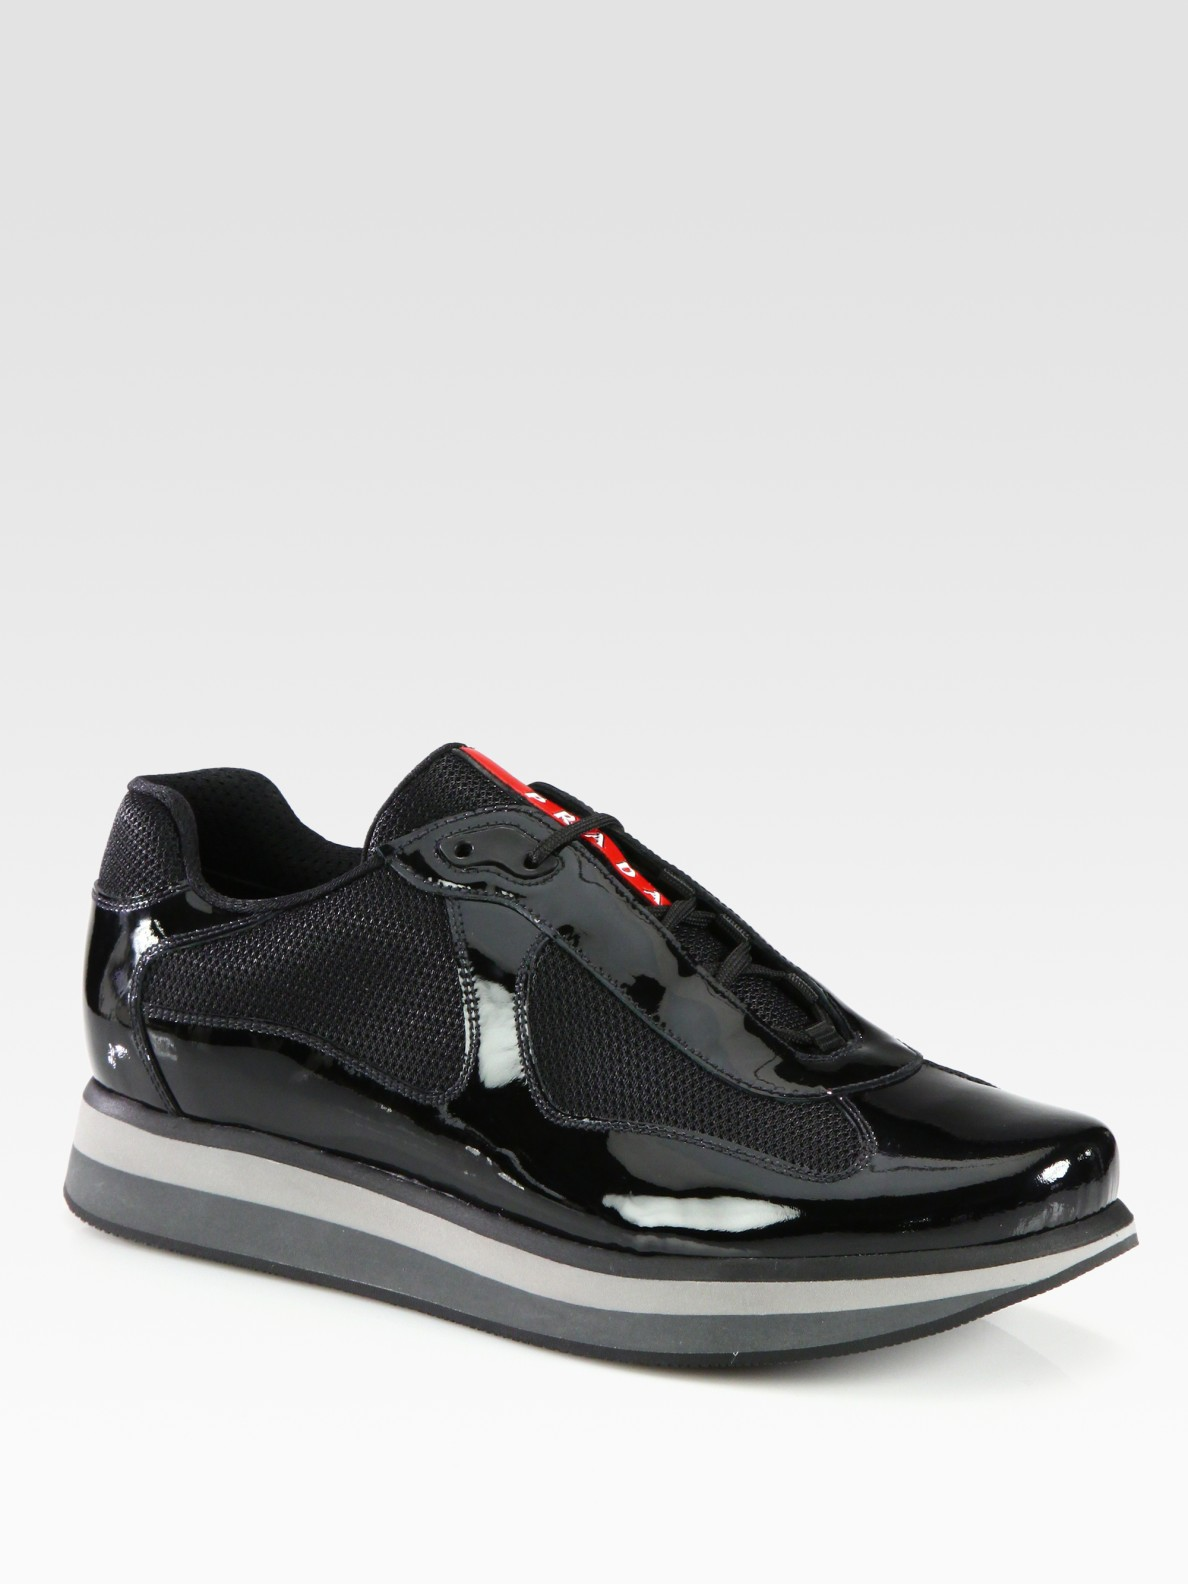 Patent Leather Basketball Shoes